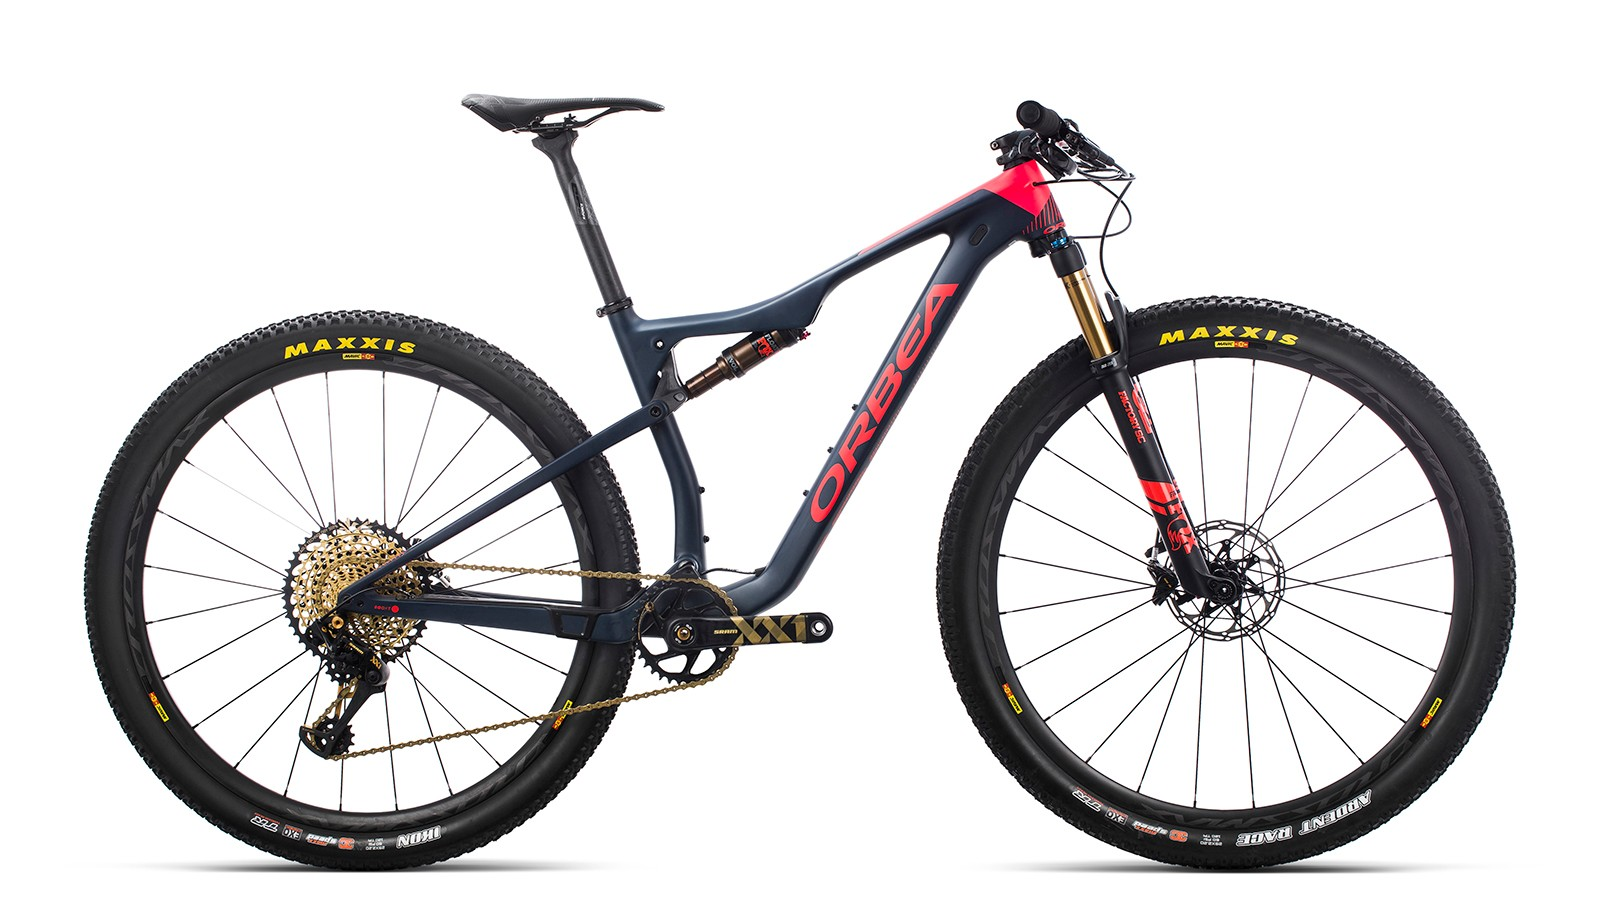 The 2019 Orbea Oiz M-LTD